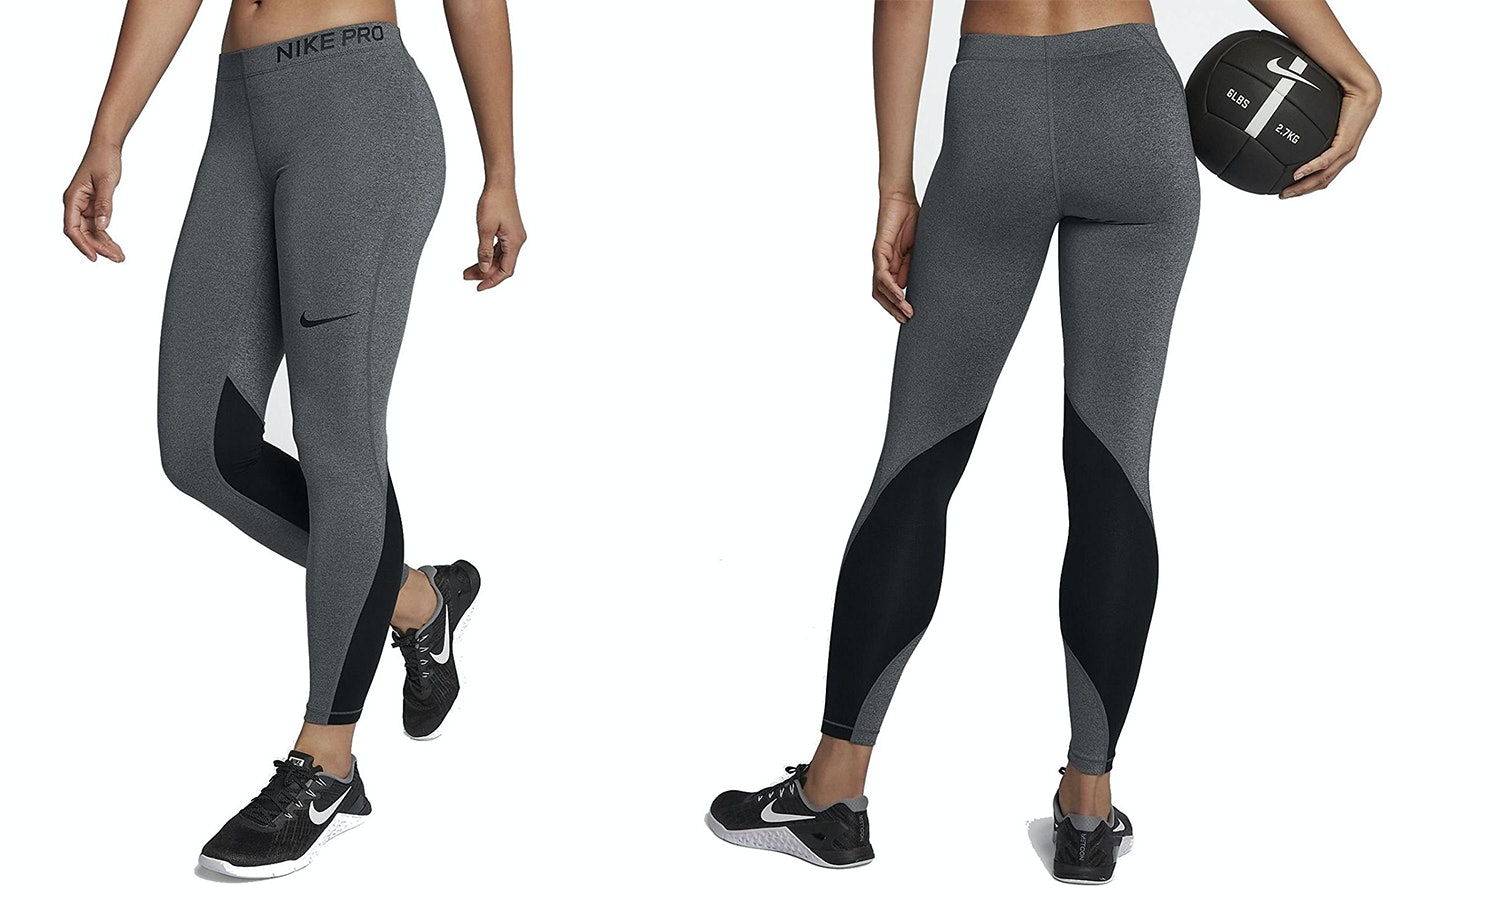 c918be48d7 The 5 Best Running Tights For Women